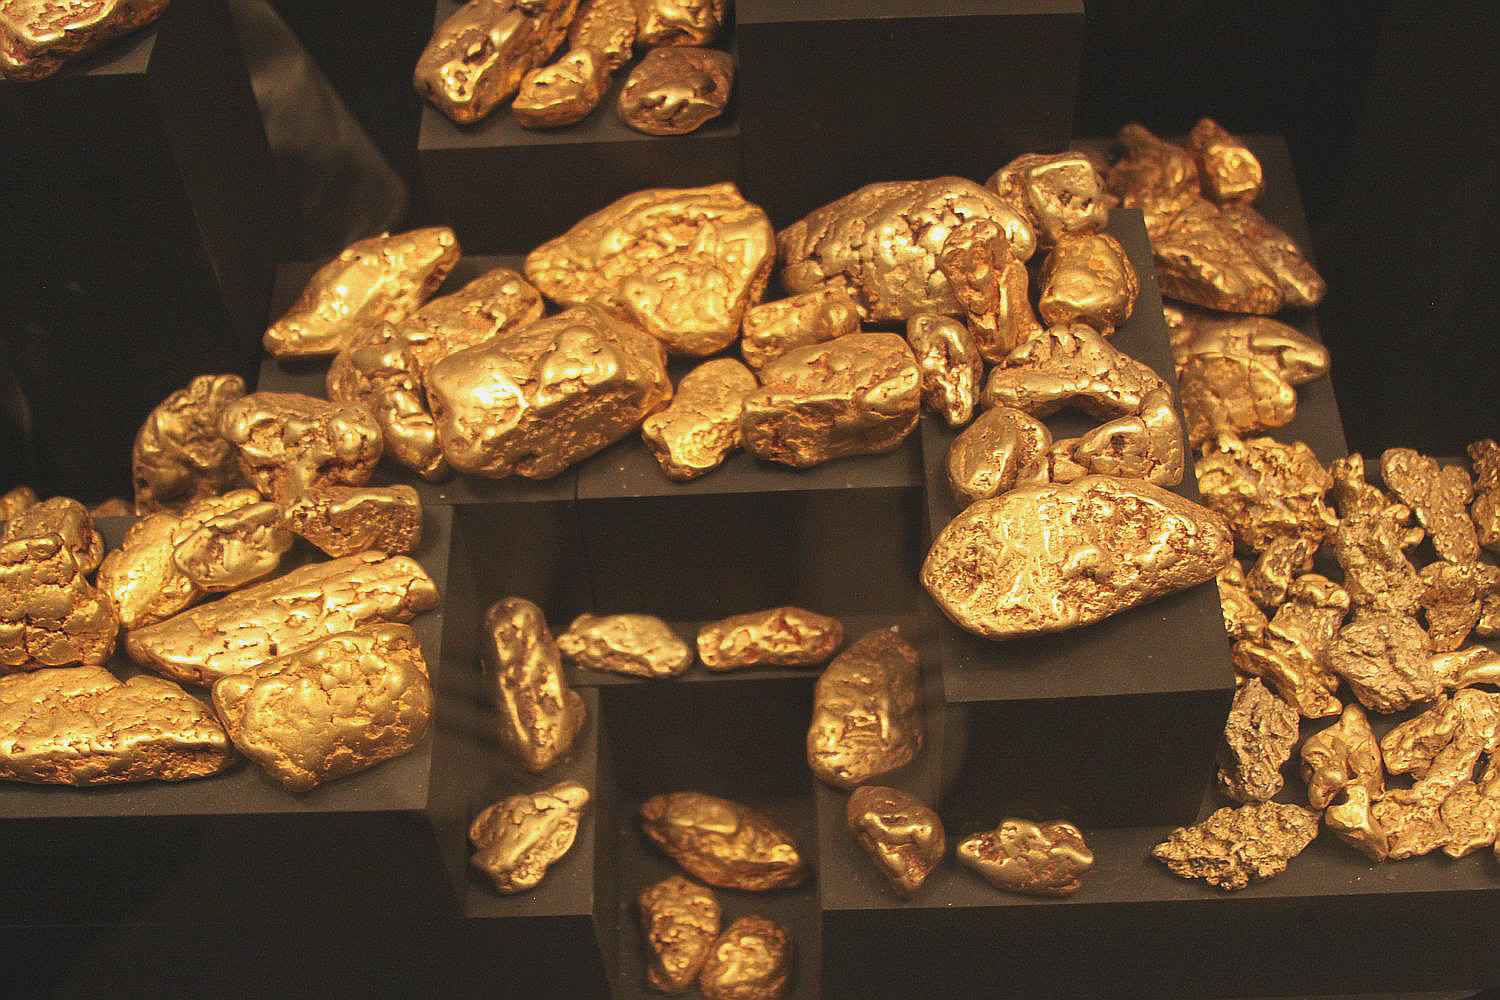 How are gold mined